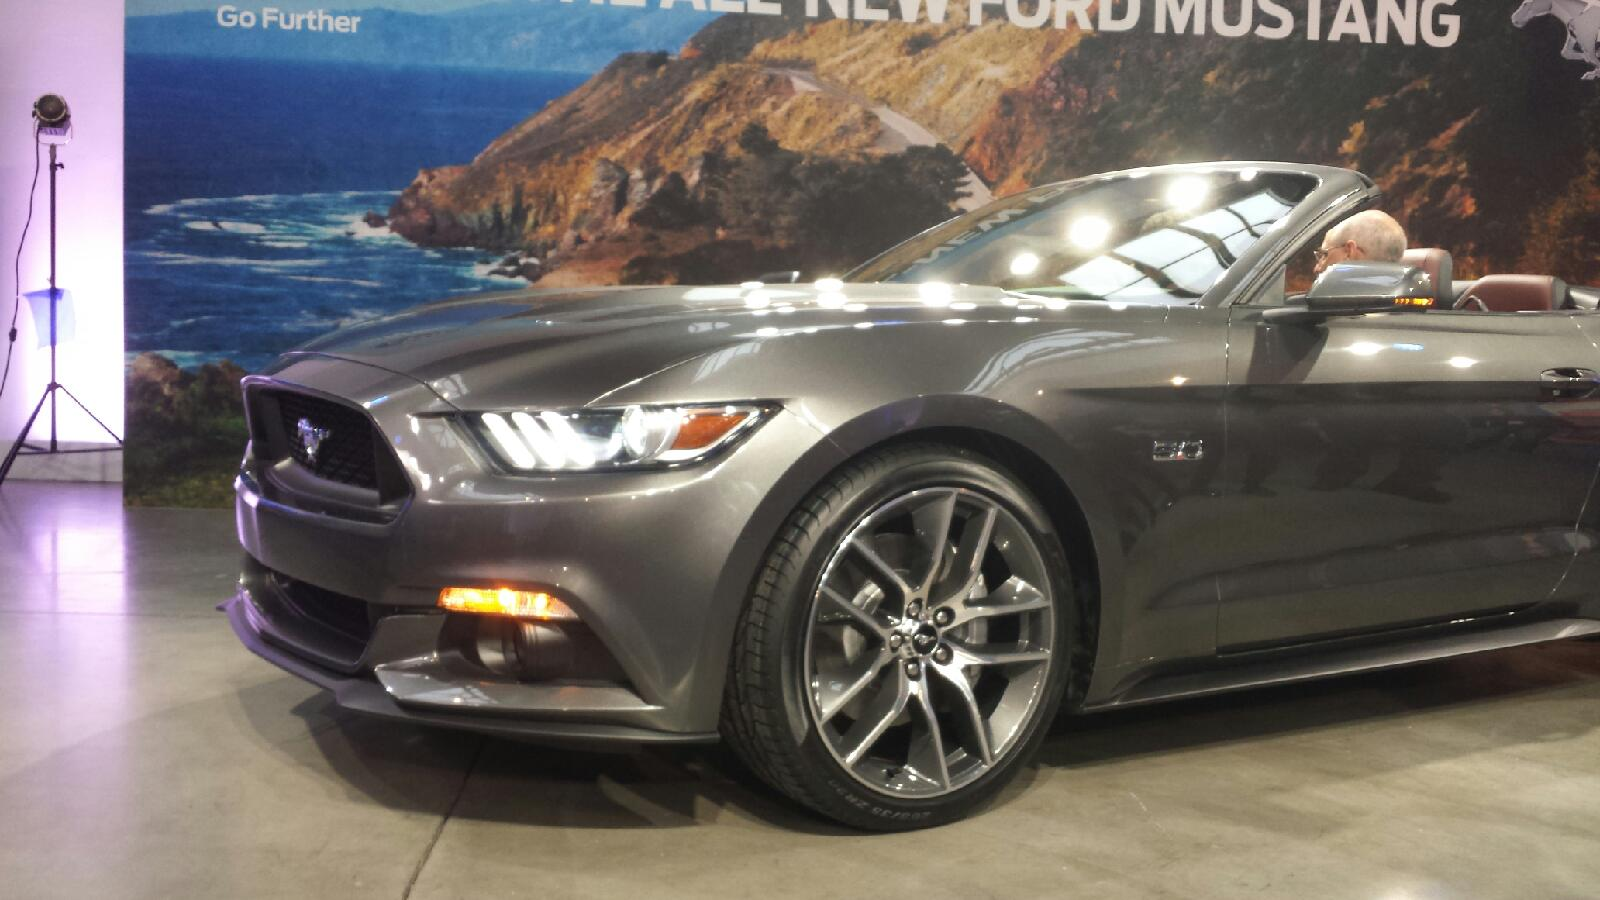 2015 mustang gt convertible 1 - 2015 Ford Mustang Gt Convertible Black